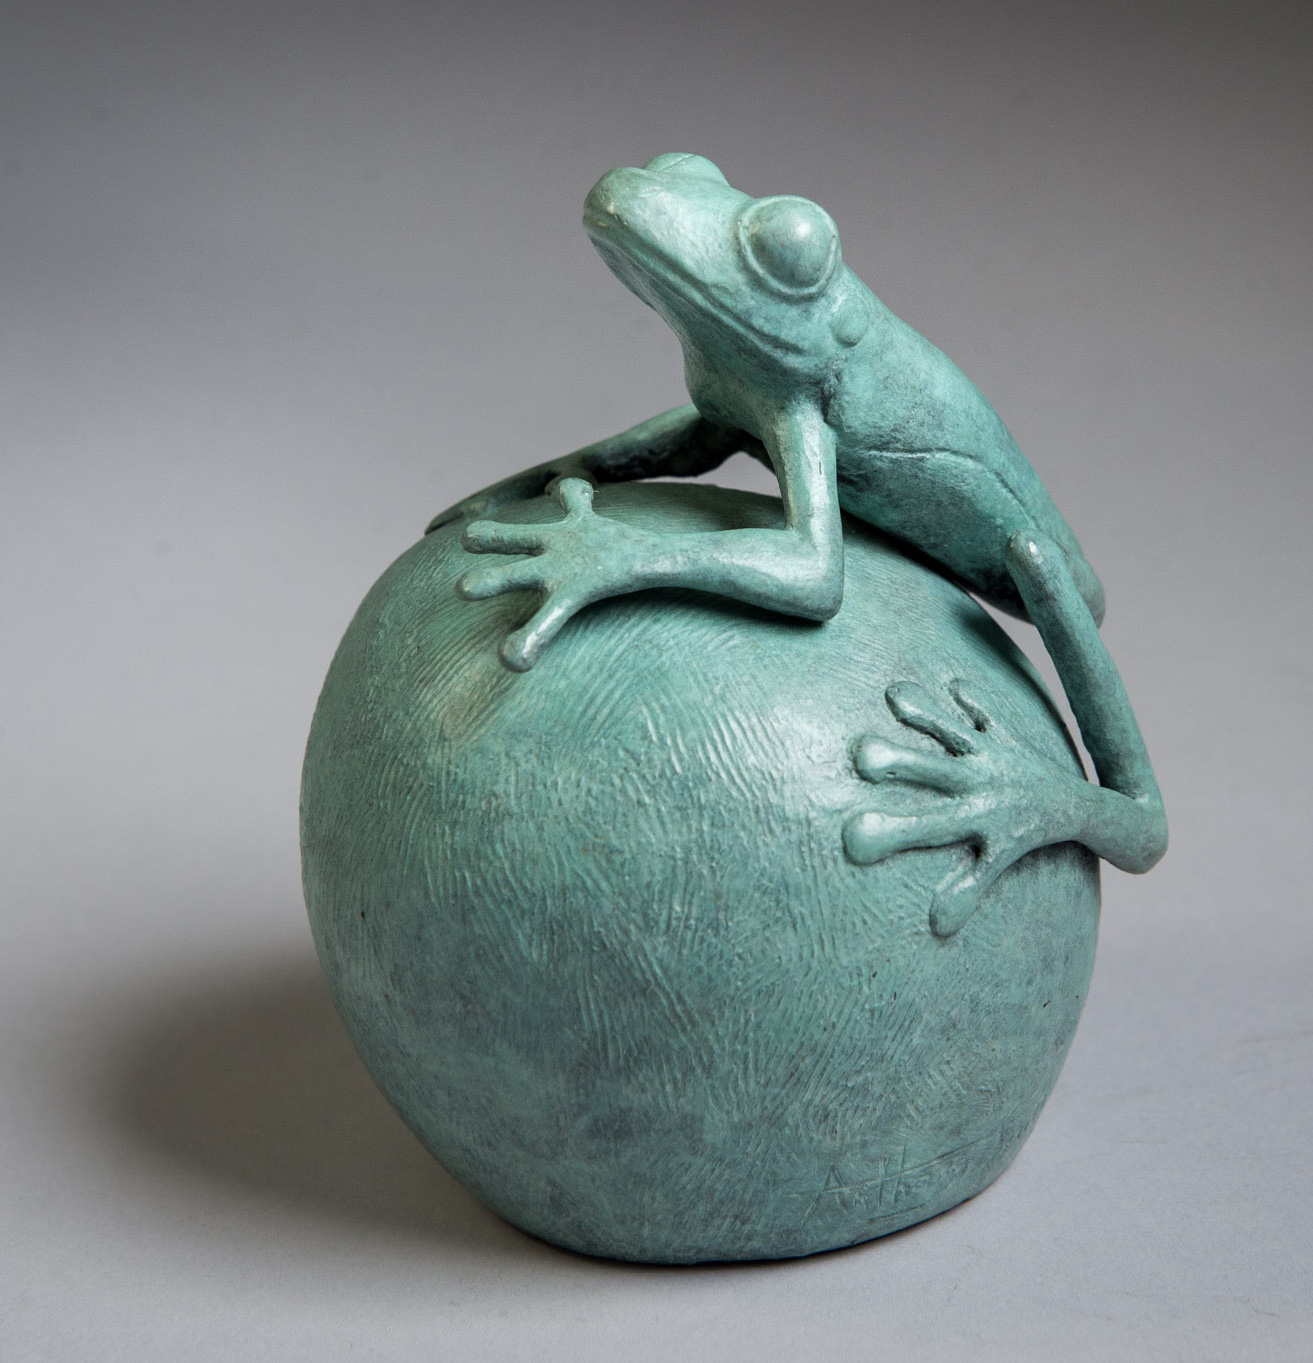 Bronze sculpture of a Tree Frog by artist Anthony Smith